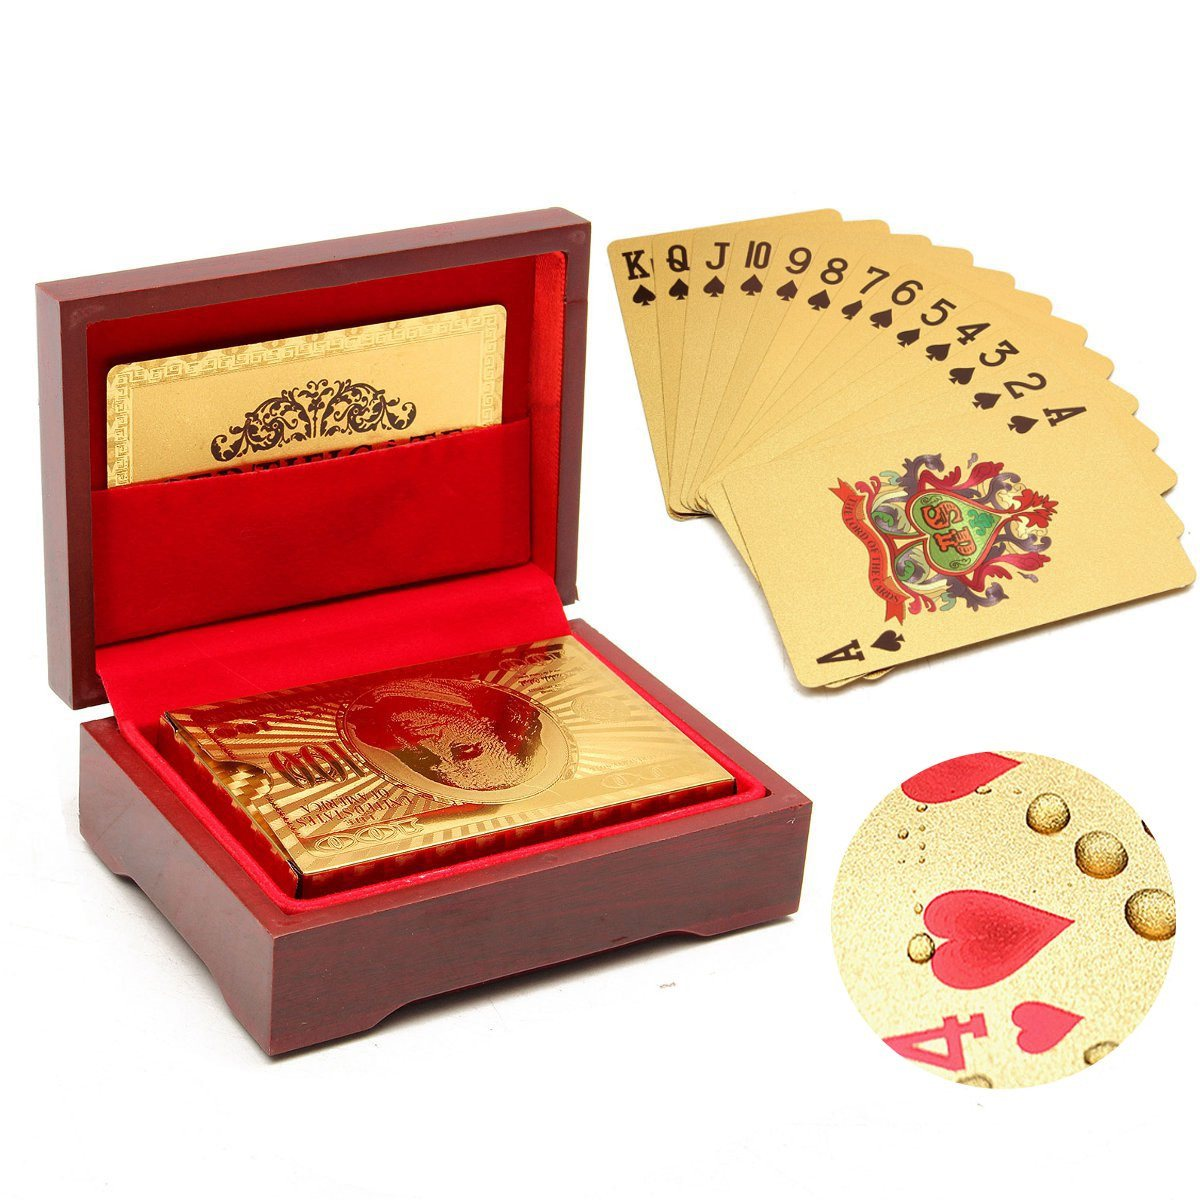 Plastic Waterproof Gold Poker Cards Set With Red Box Perfect for Birthday Public Relations Planning Best Gifts for Card Lovers